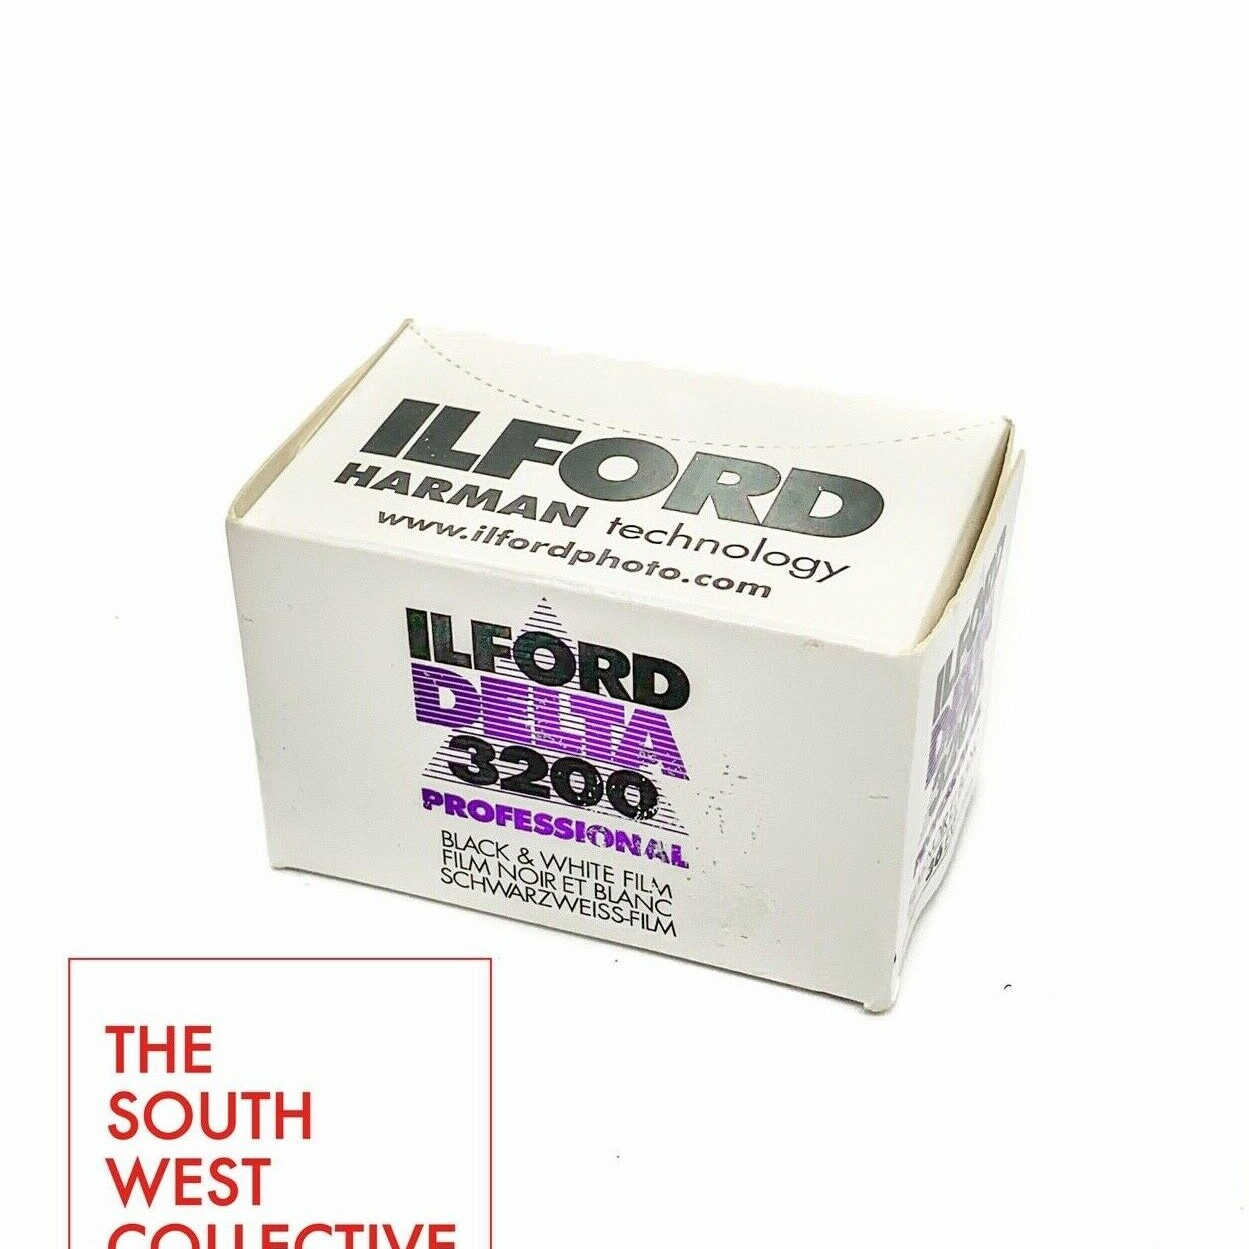 ILFORD DELTA 3200 PROFESSIONAL is the world's fastest black & white film with a nominal sensitivity of EI 3200/36°. This panchromatic film is the perfect choice for any difficult available light photography conditions.